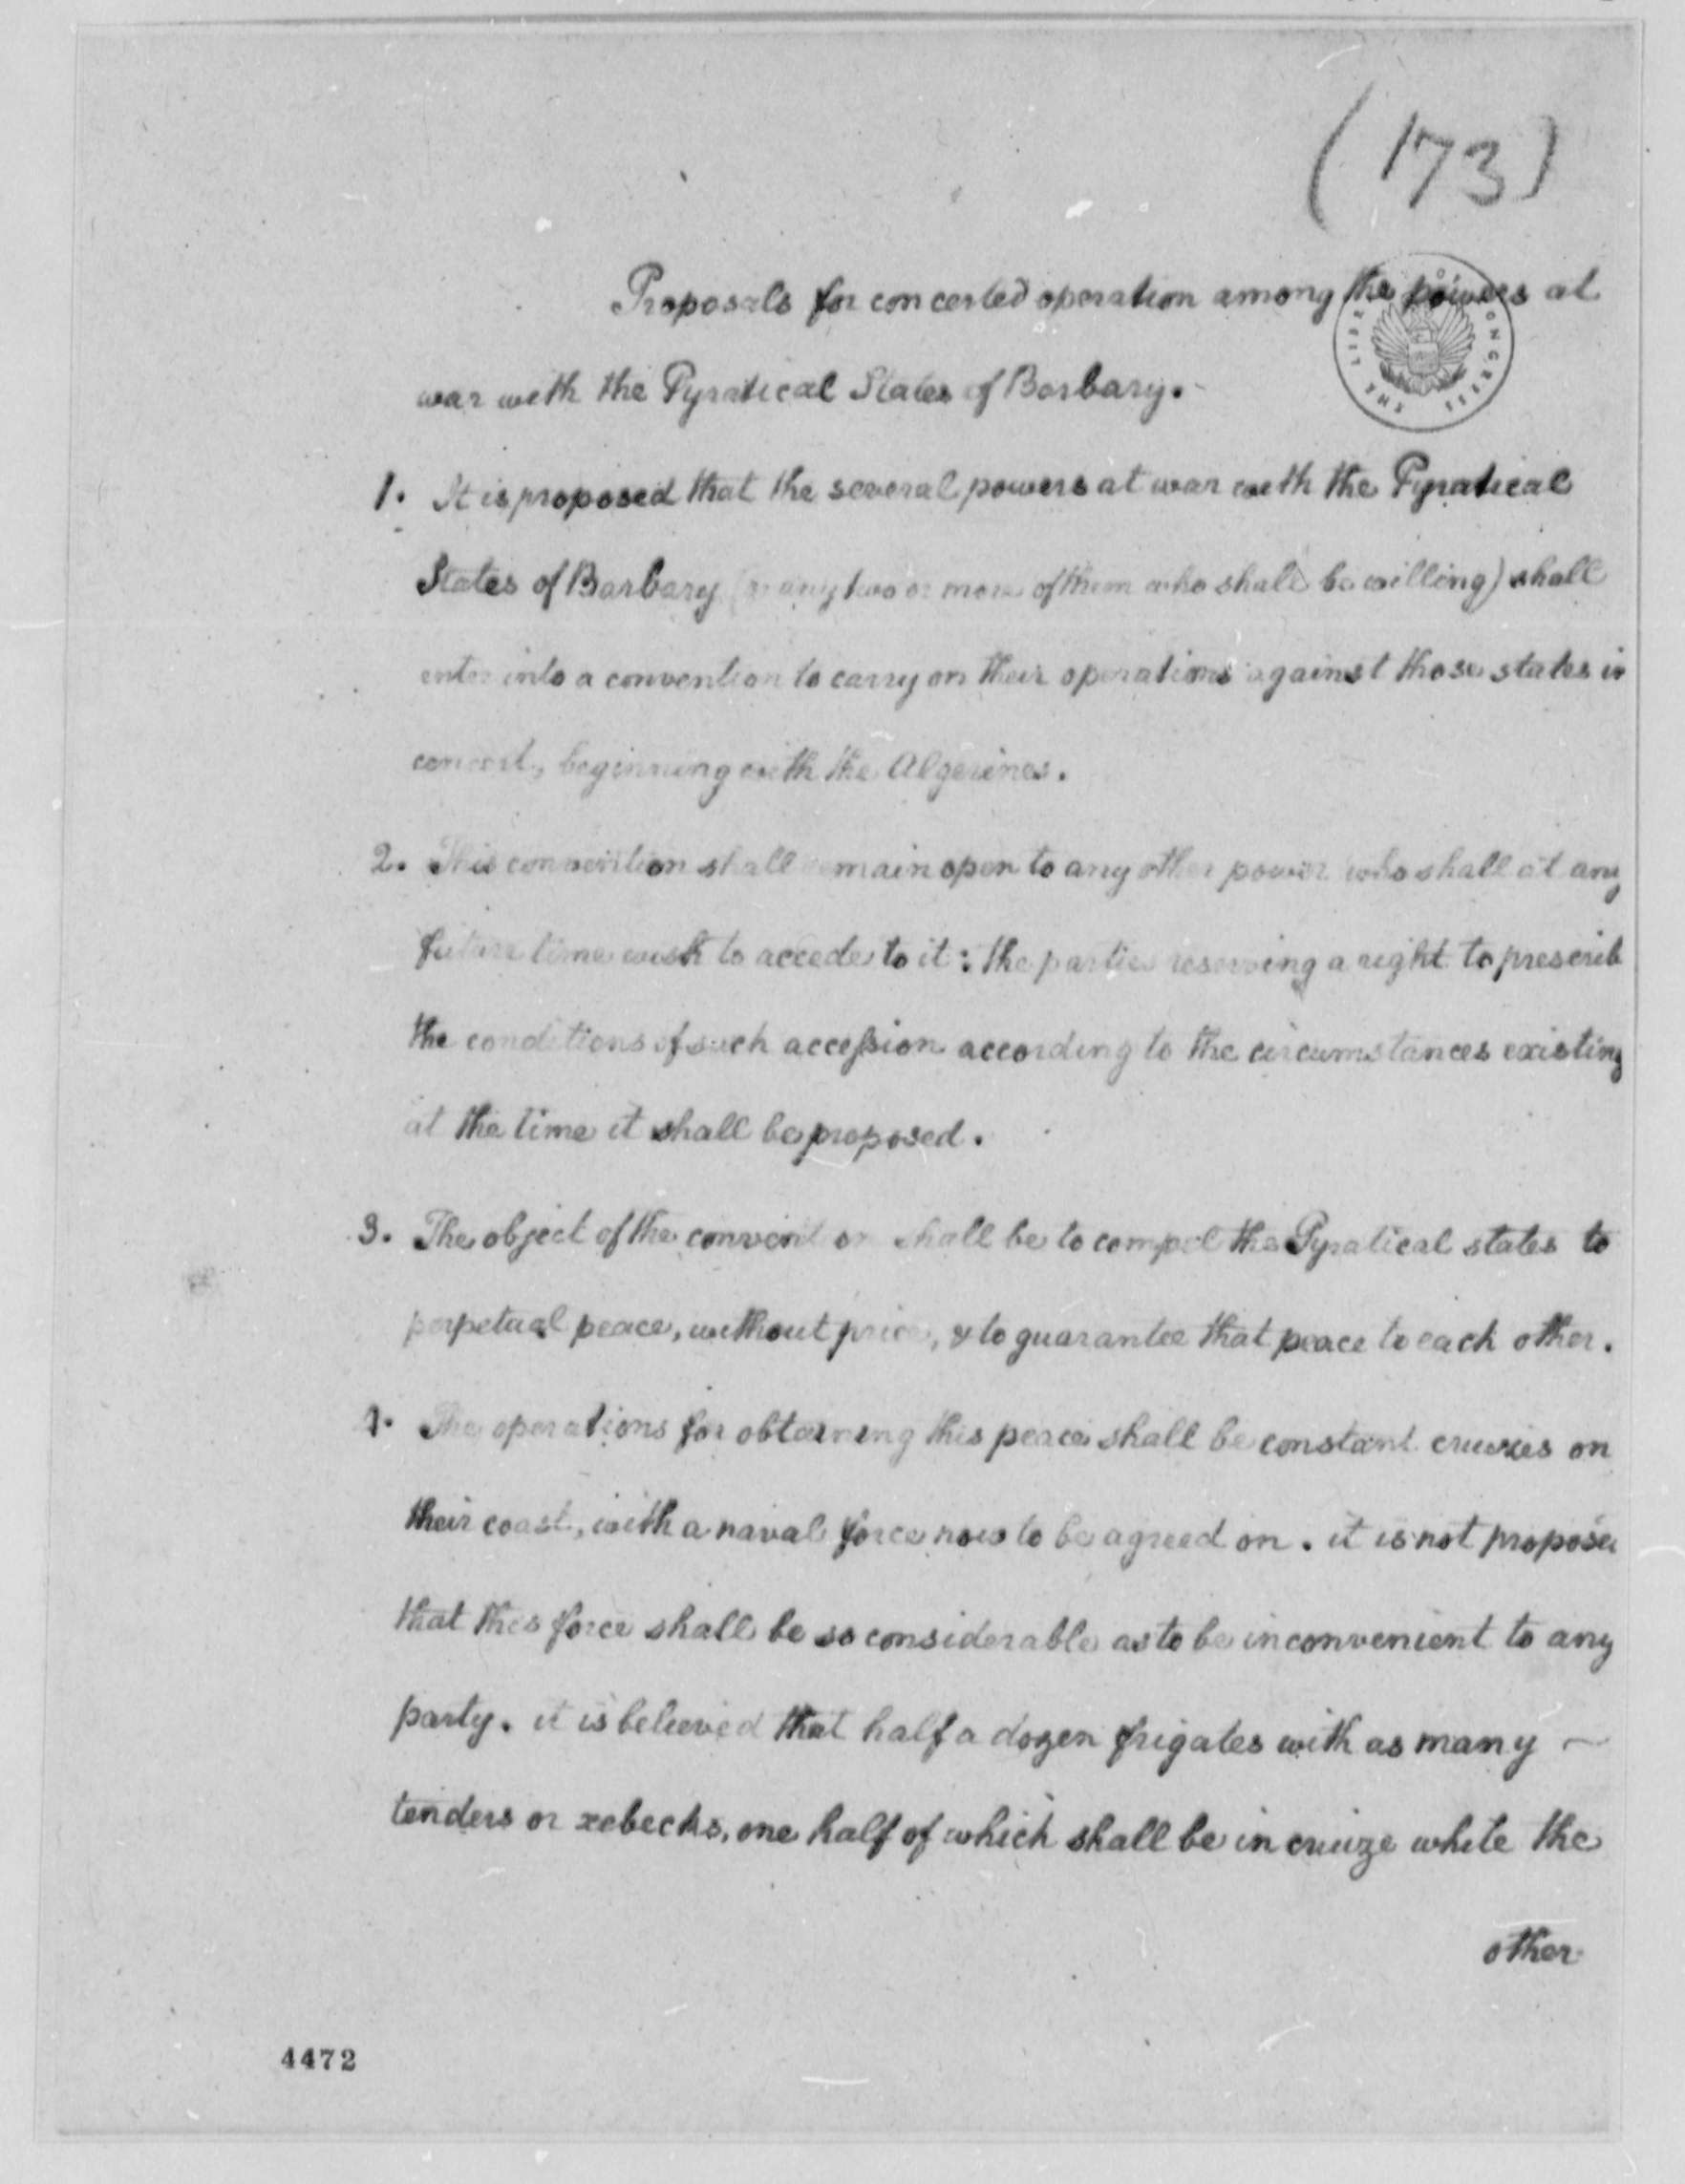 Thomas Jefferson Proposals For War Powers Against The Barbary States With Copy